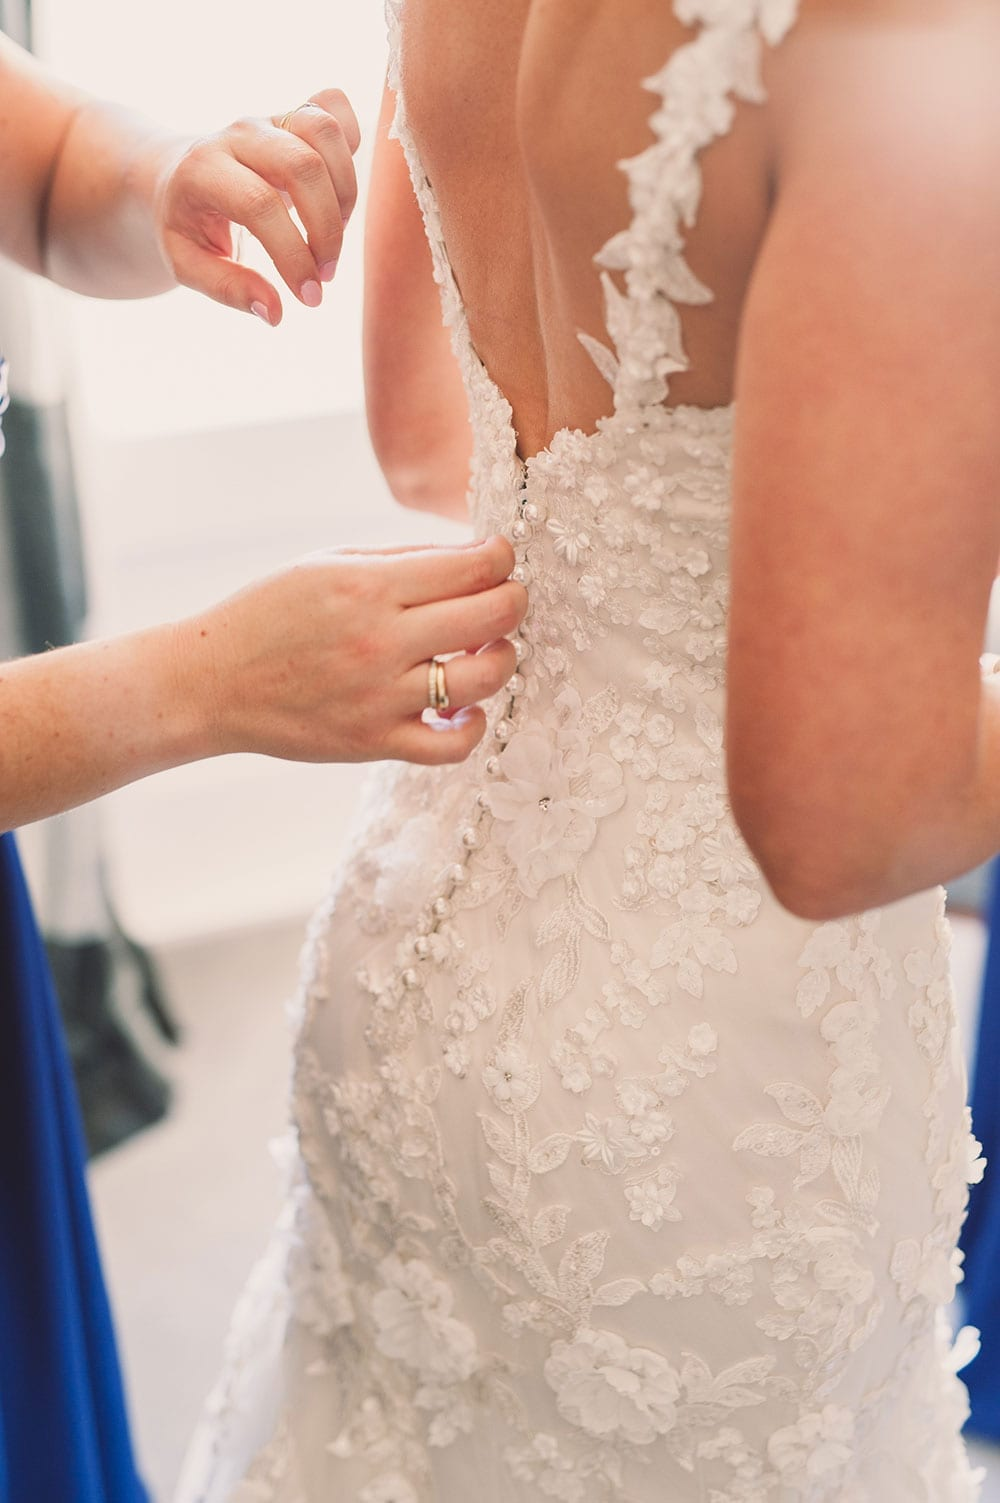 Real Weddings | Vinka Design | Real Brides Wearing Vinka Gowns | Claire and Paul - Claire being dressed with detail buttons being fastened